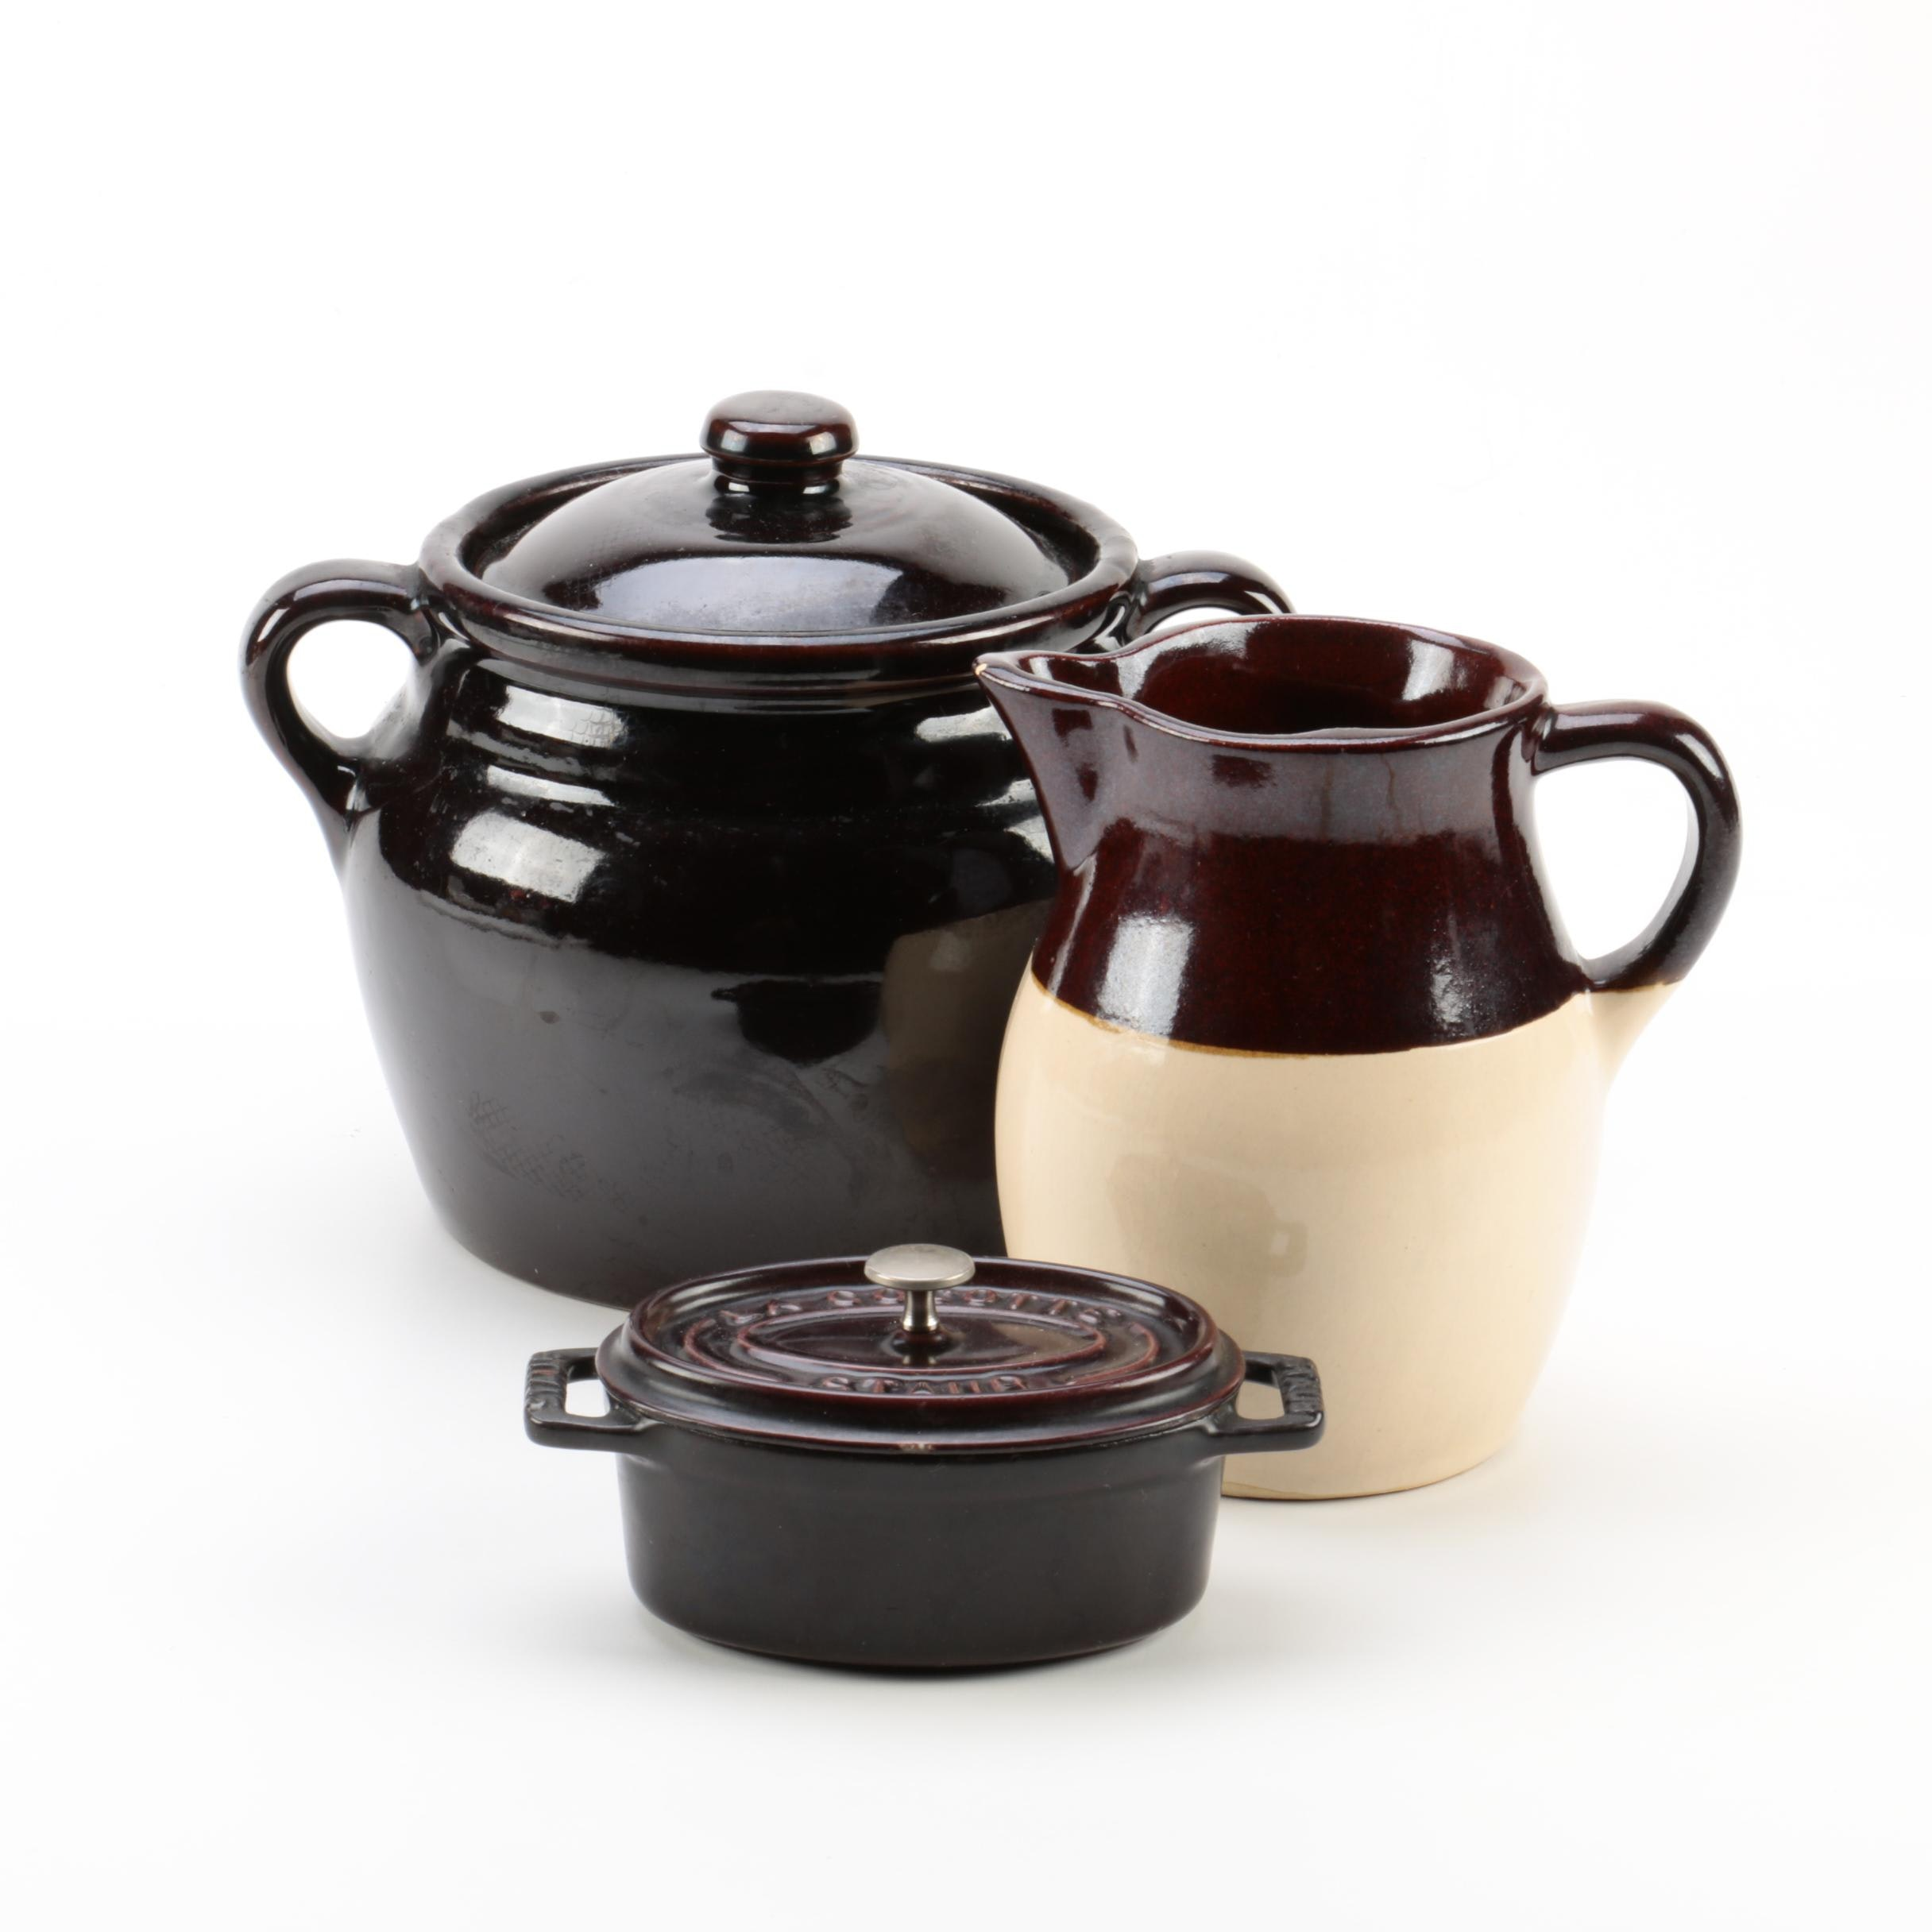 Bean Pot and Staub Iron Enamel Cocotte with a Jug